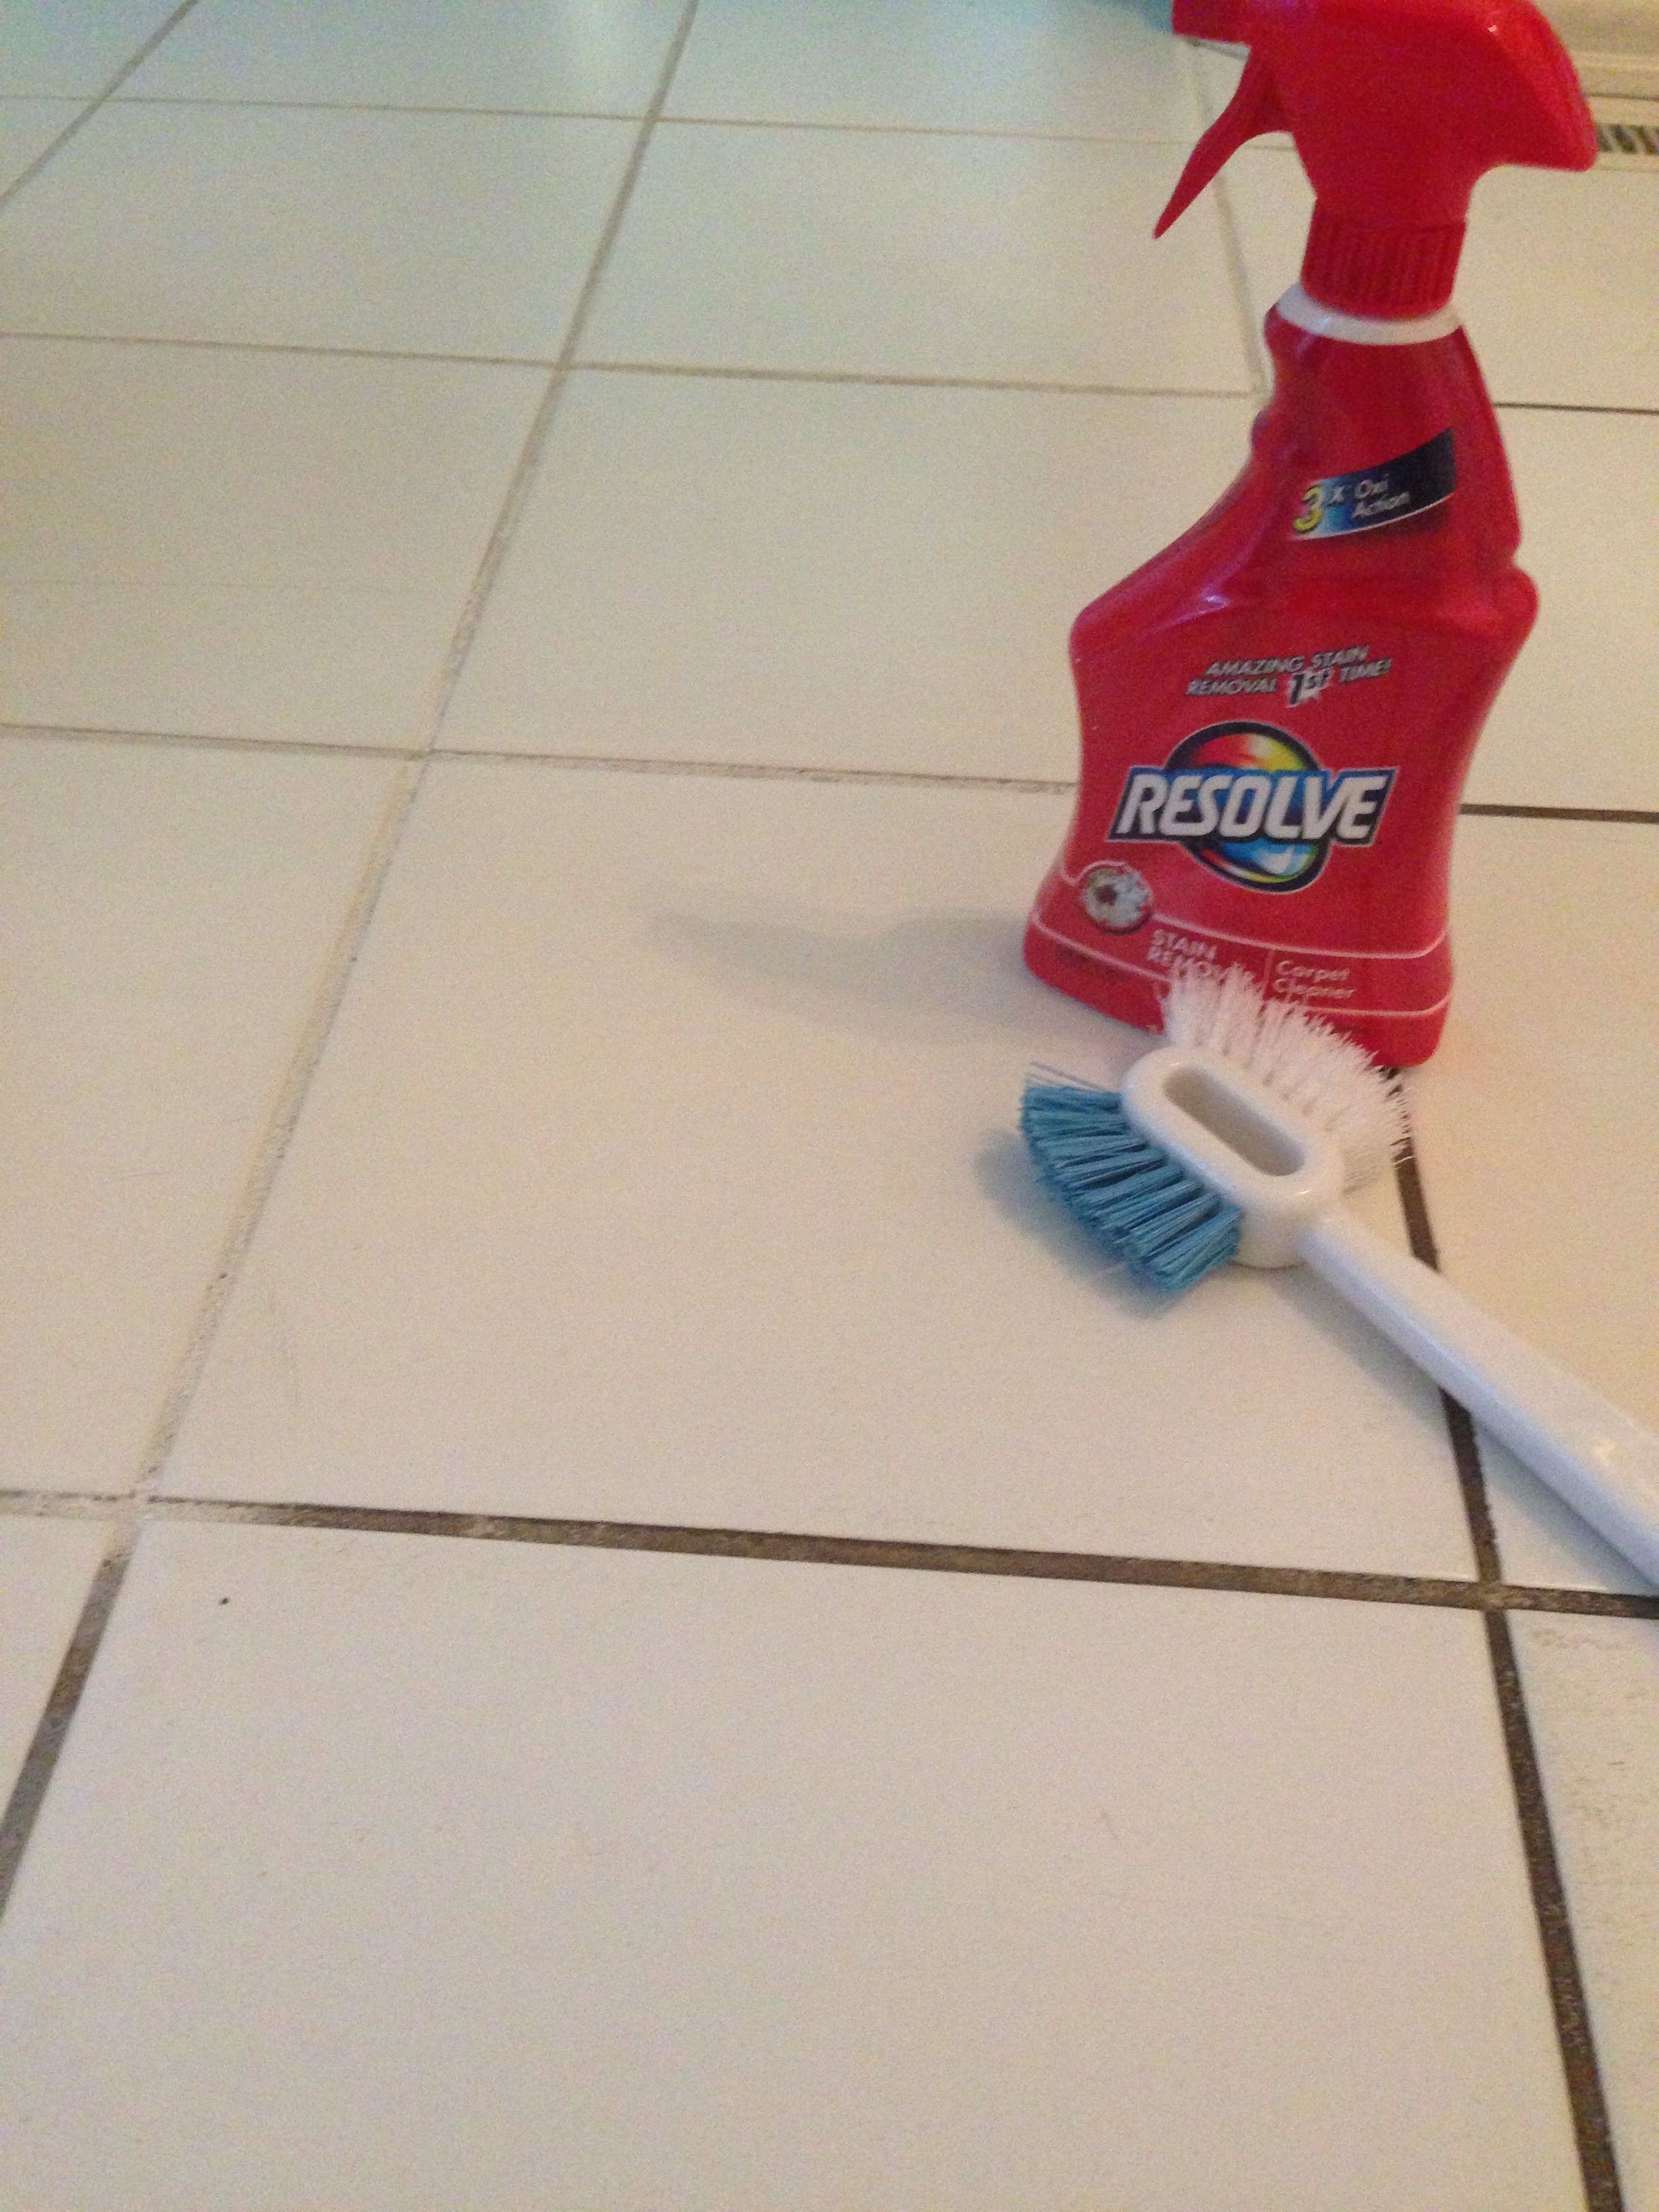 Kitchen Floor Grout Cleaner The Best Ways To Clean Tile Floors The Floor Cleaning Tips And Tile